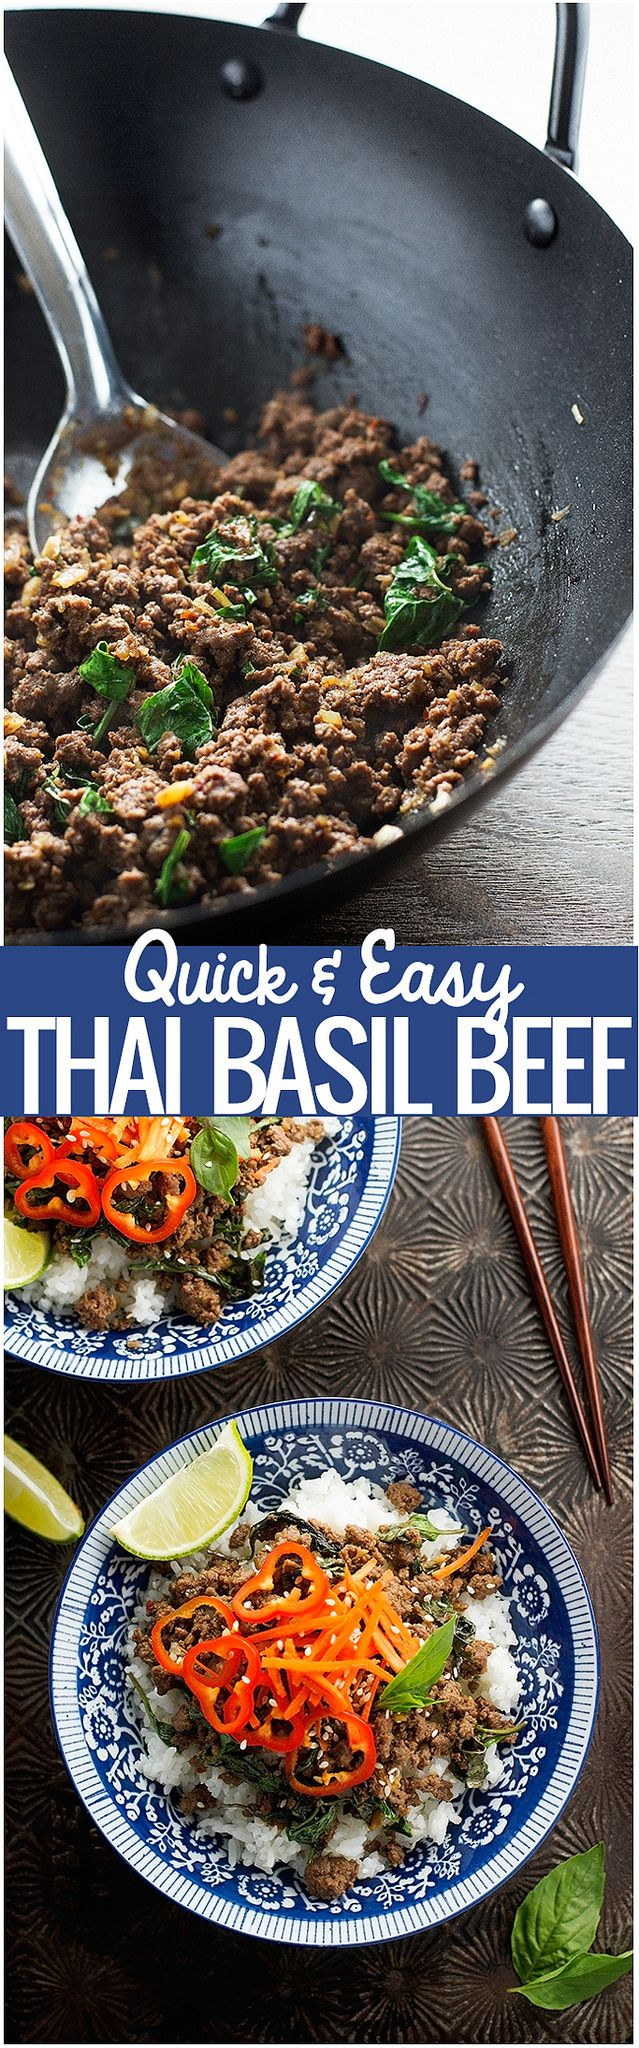 Thai Basil Beef - Quick and easy to make and ready in just 20 minutes. It'll be a hit with adults and kids alike! #thaifood #basilbeef #thaibasilbeef | Littlespicejar.com